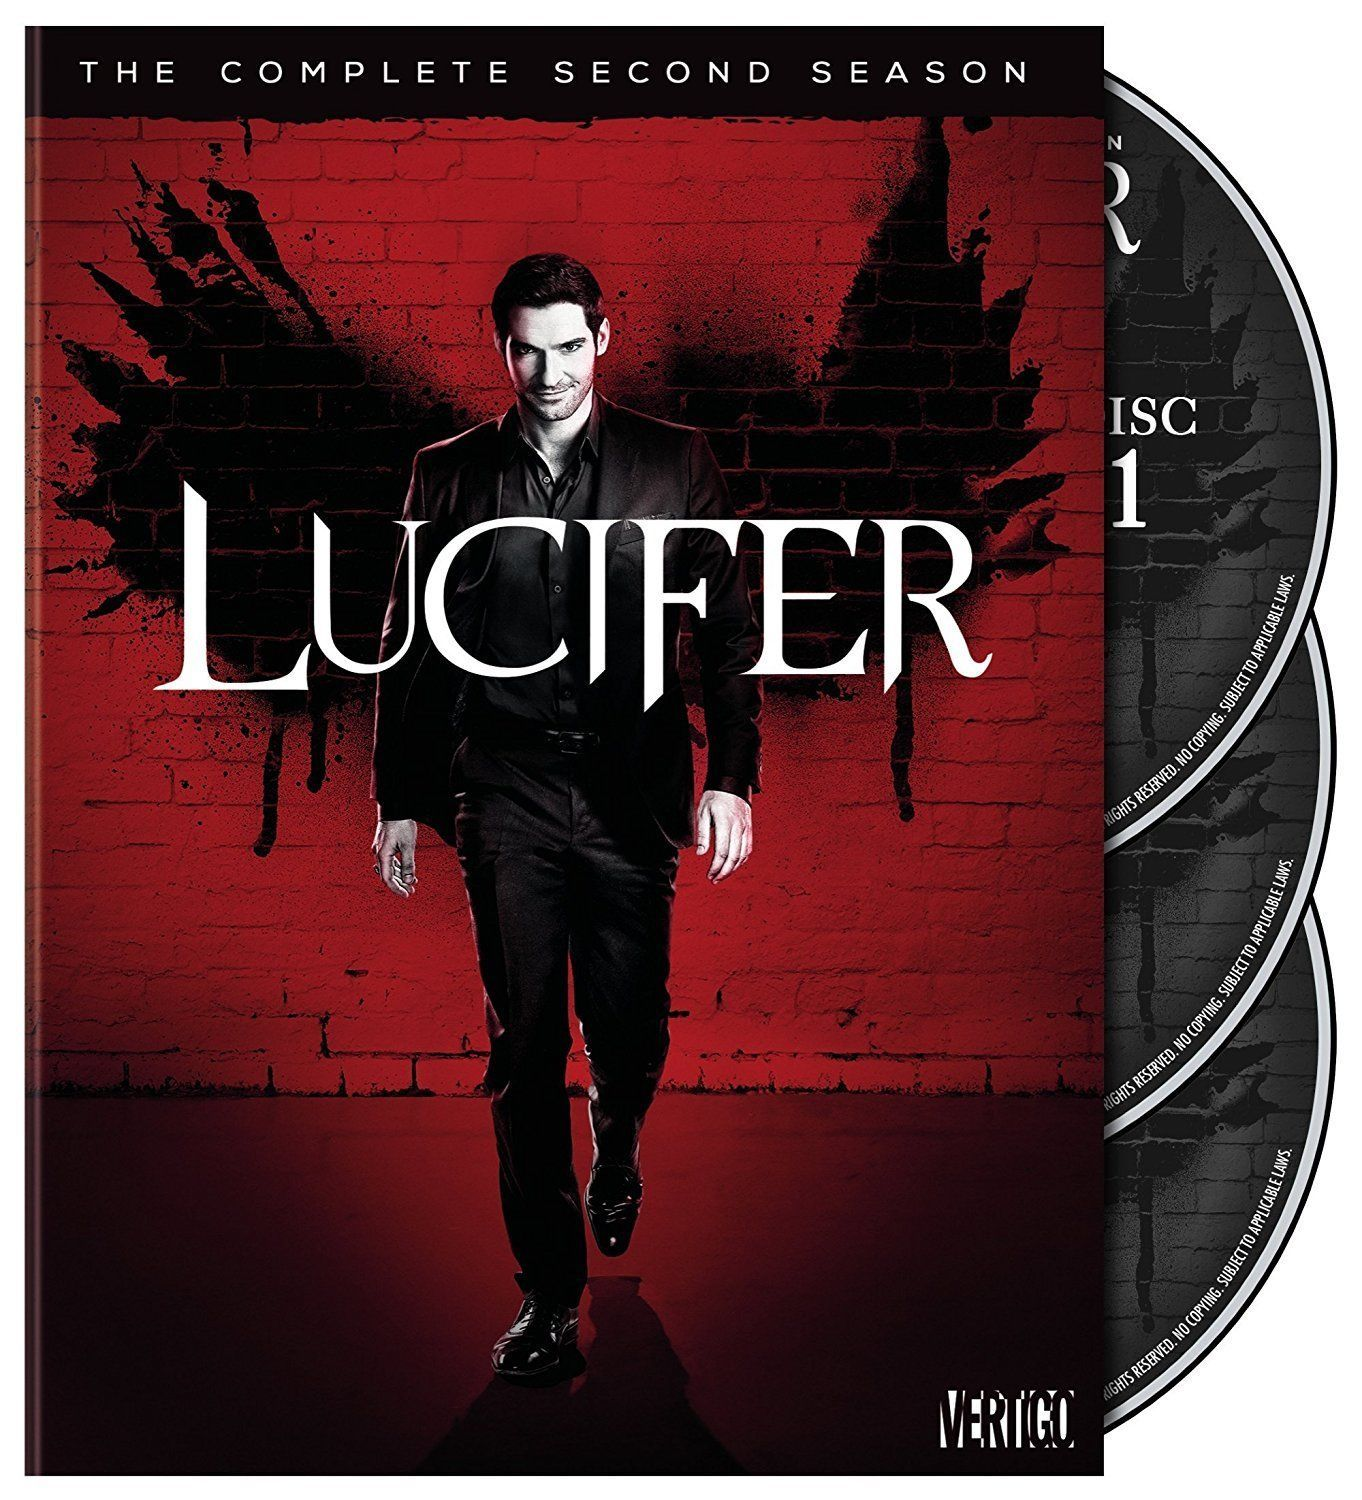 Lucifer: The Complete Second Season 2 (DVD, 2017, 3-Disc Set New) TV Series